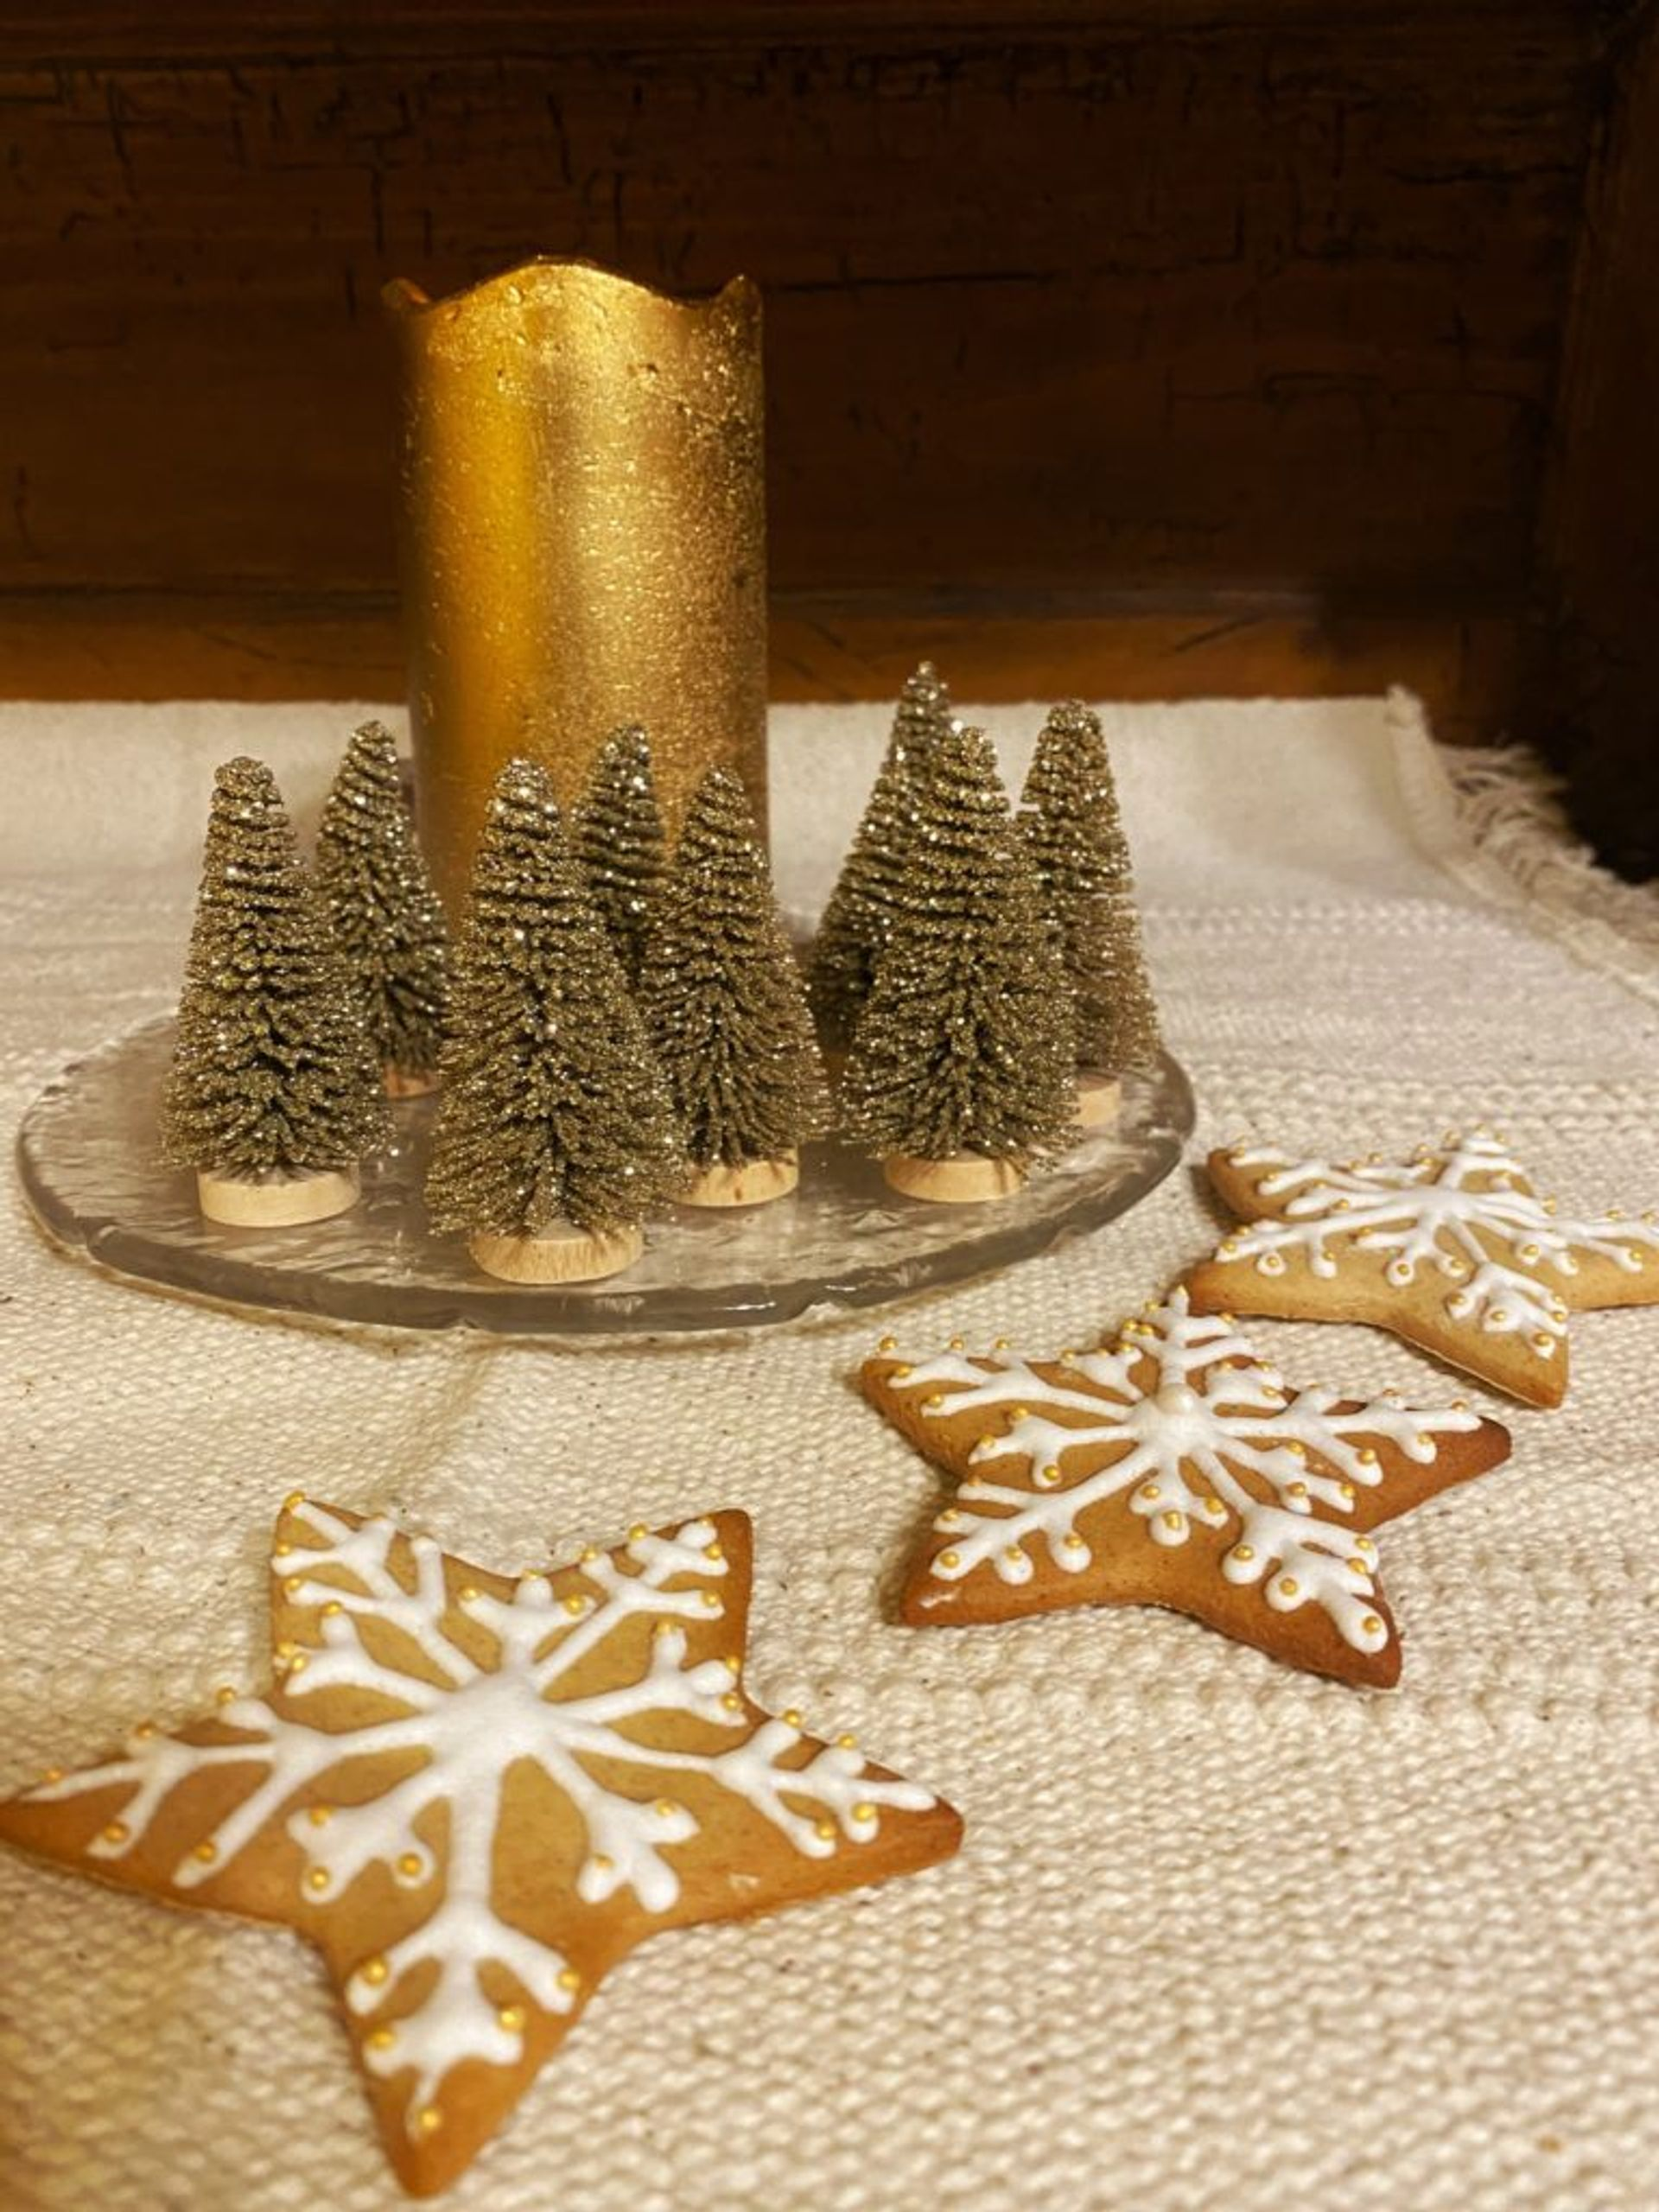 Three gingerbread cookies in the shape of stars decorated with white icing.